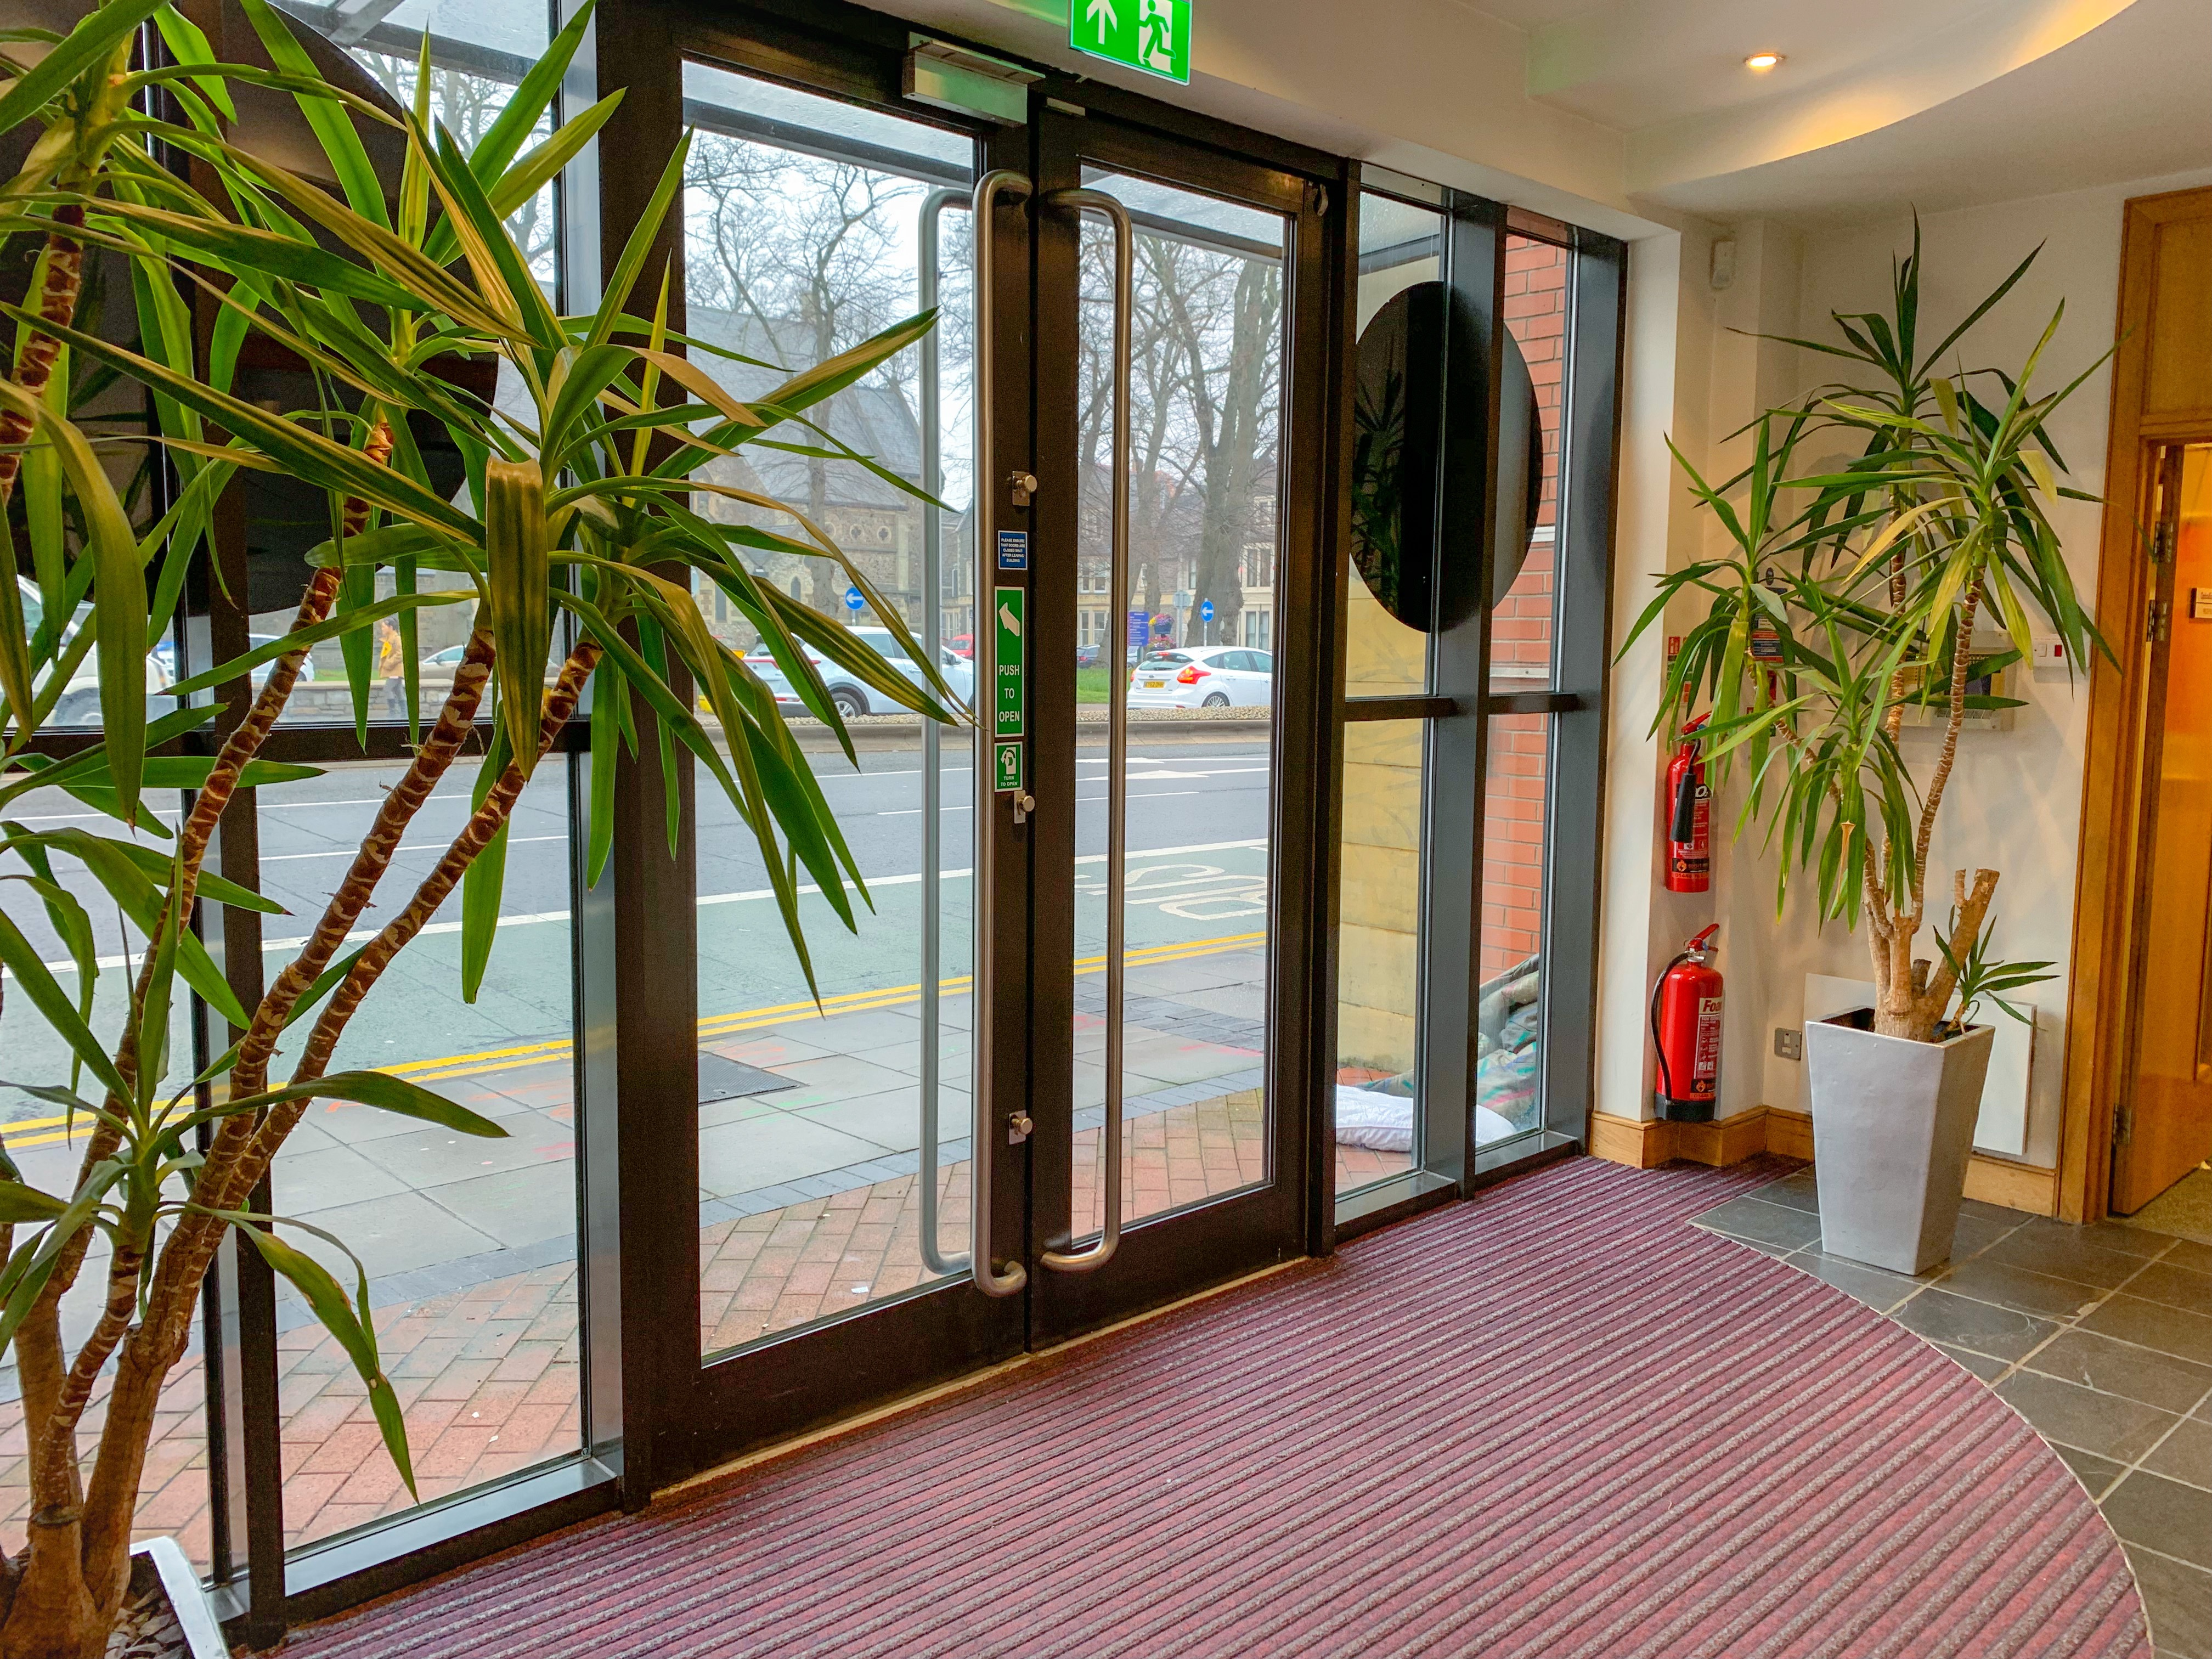 24 Windsor Place, CARDIFF, CF10 3BY